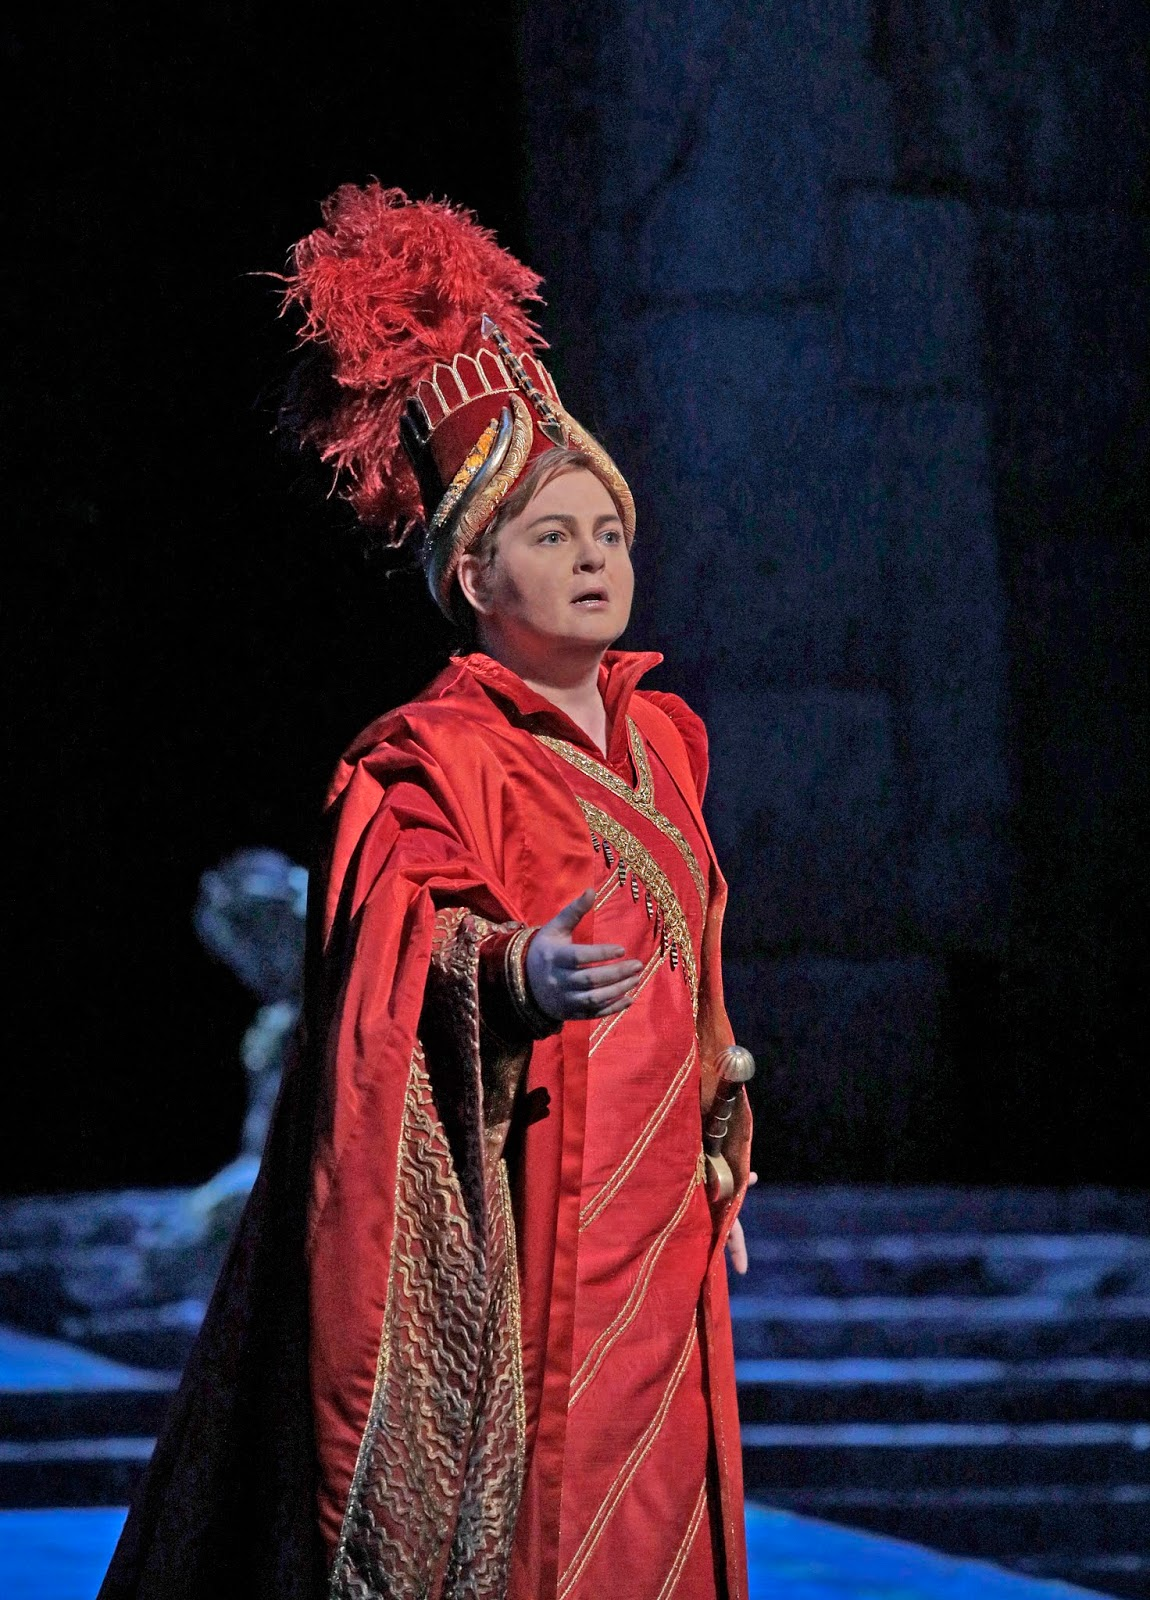 SINGER SPOTLIGHT: Mezzo-soprano ELIZABETH DESHONG as Arsace in The Metropolitan Opera's 2018 production of Gioachino Rossini's SEMIRAMIDE [Photo by Ken Howard, © by The Metropolitan Opera]